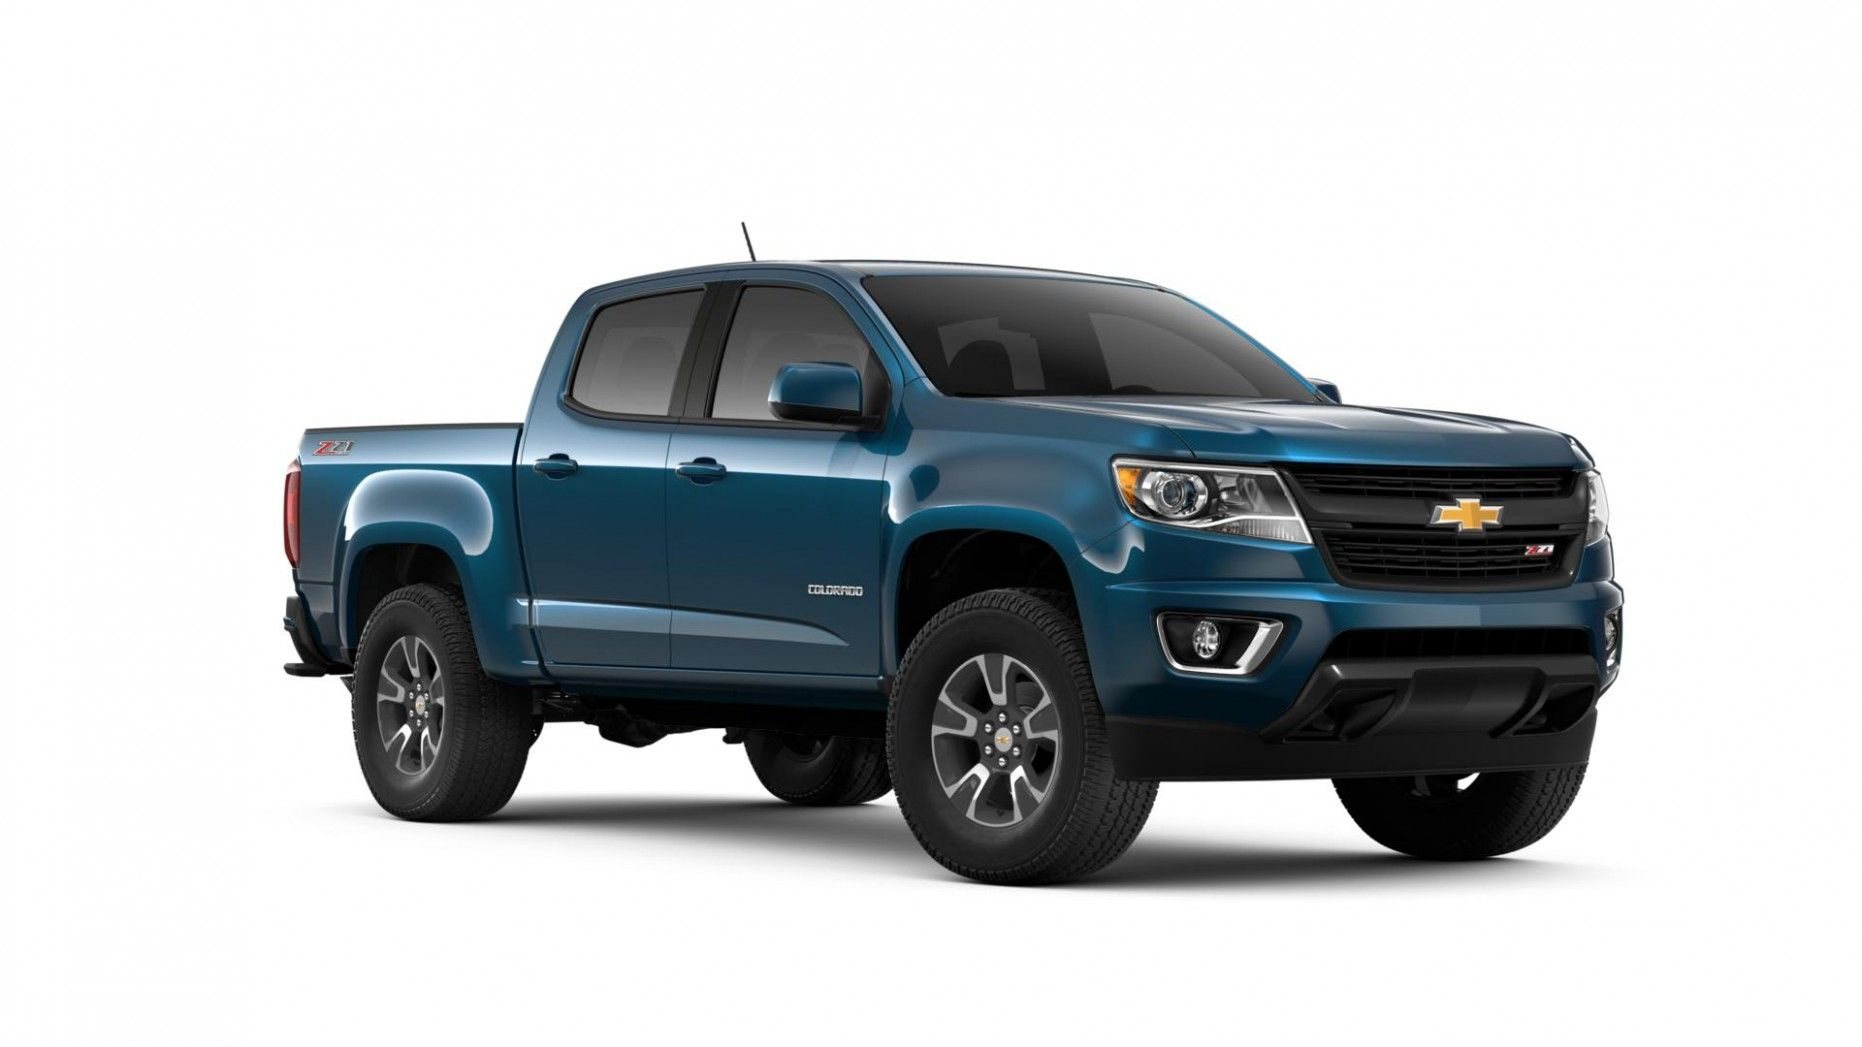 2020 Chevy Colorado Going Launched Soon Performance and New Engine